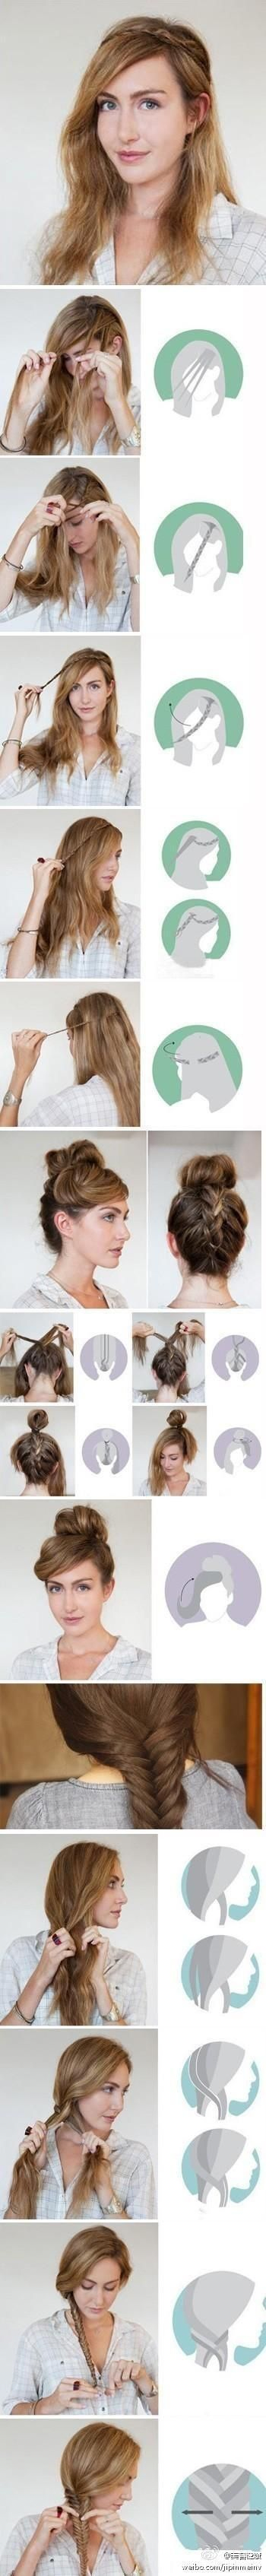 Latest Party Hairstyles Tutorial Step by Step with Pictures2015-2016 (1)